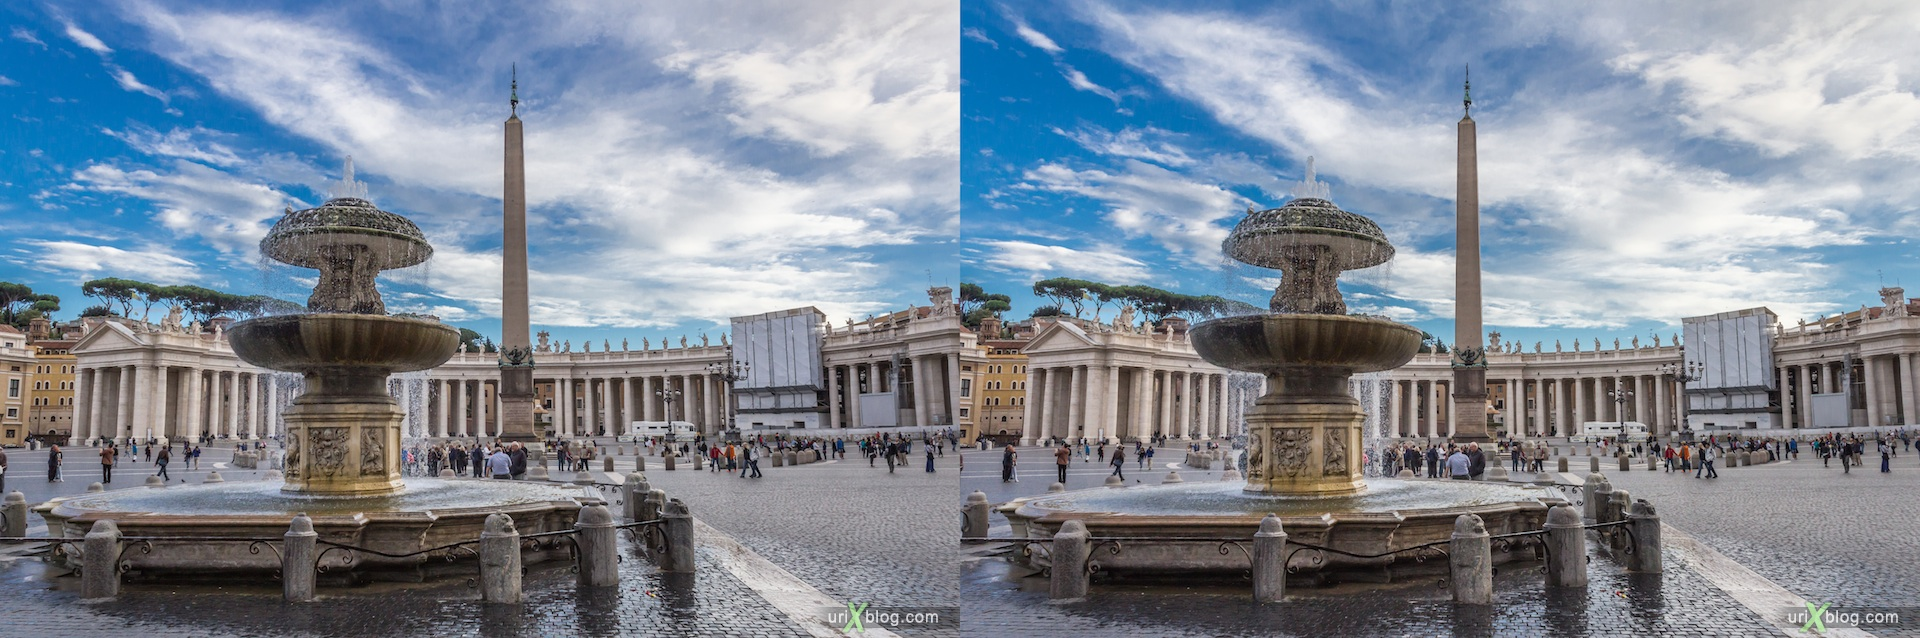 2012, northern fountain, Saint Peter's Basilica, square, Vatican, Rome, Italy, 3D, stereo pair, cross-eyed, crossview, cross view stereo pair